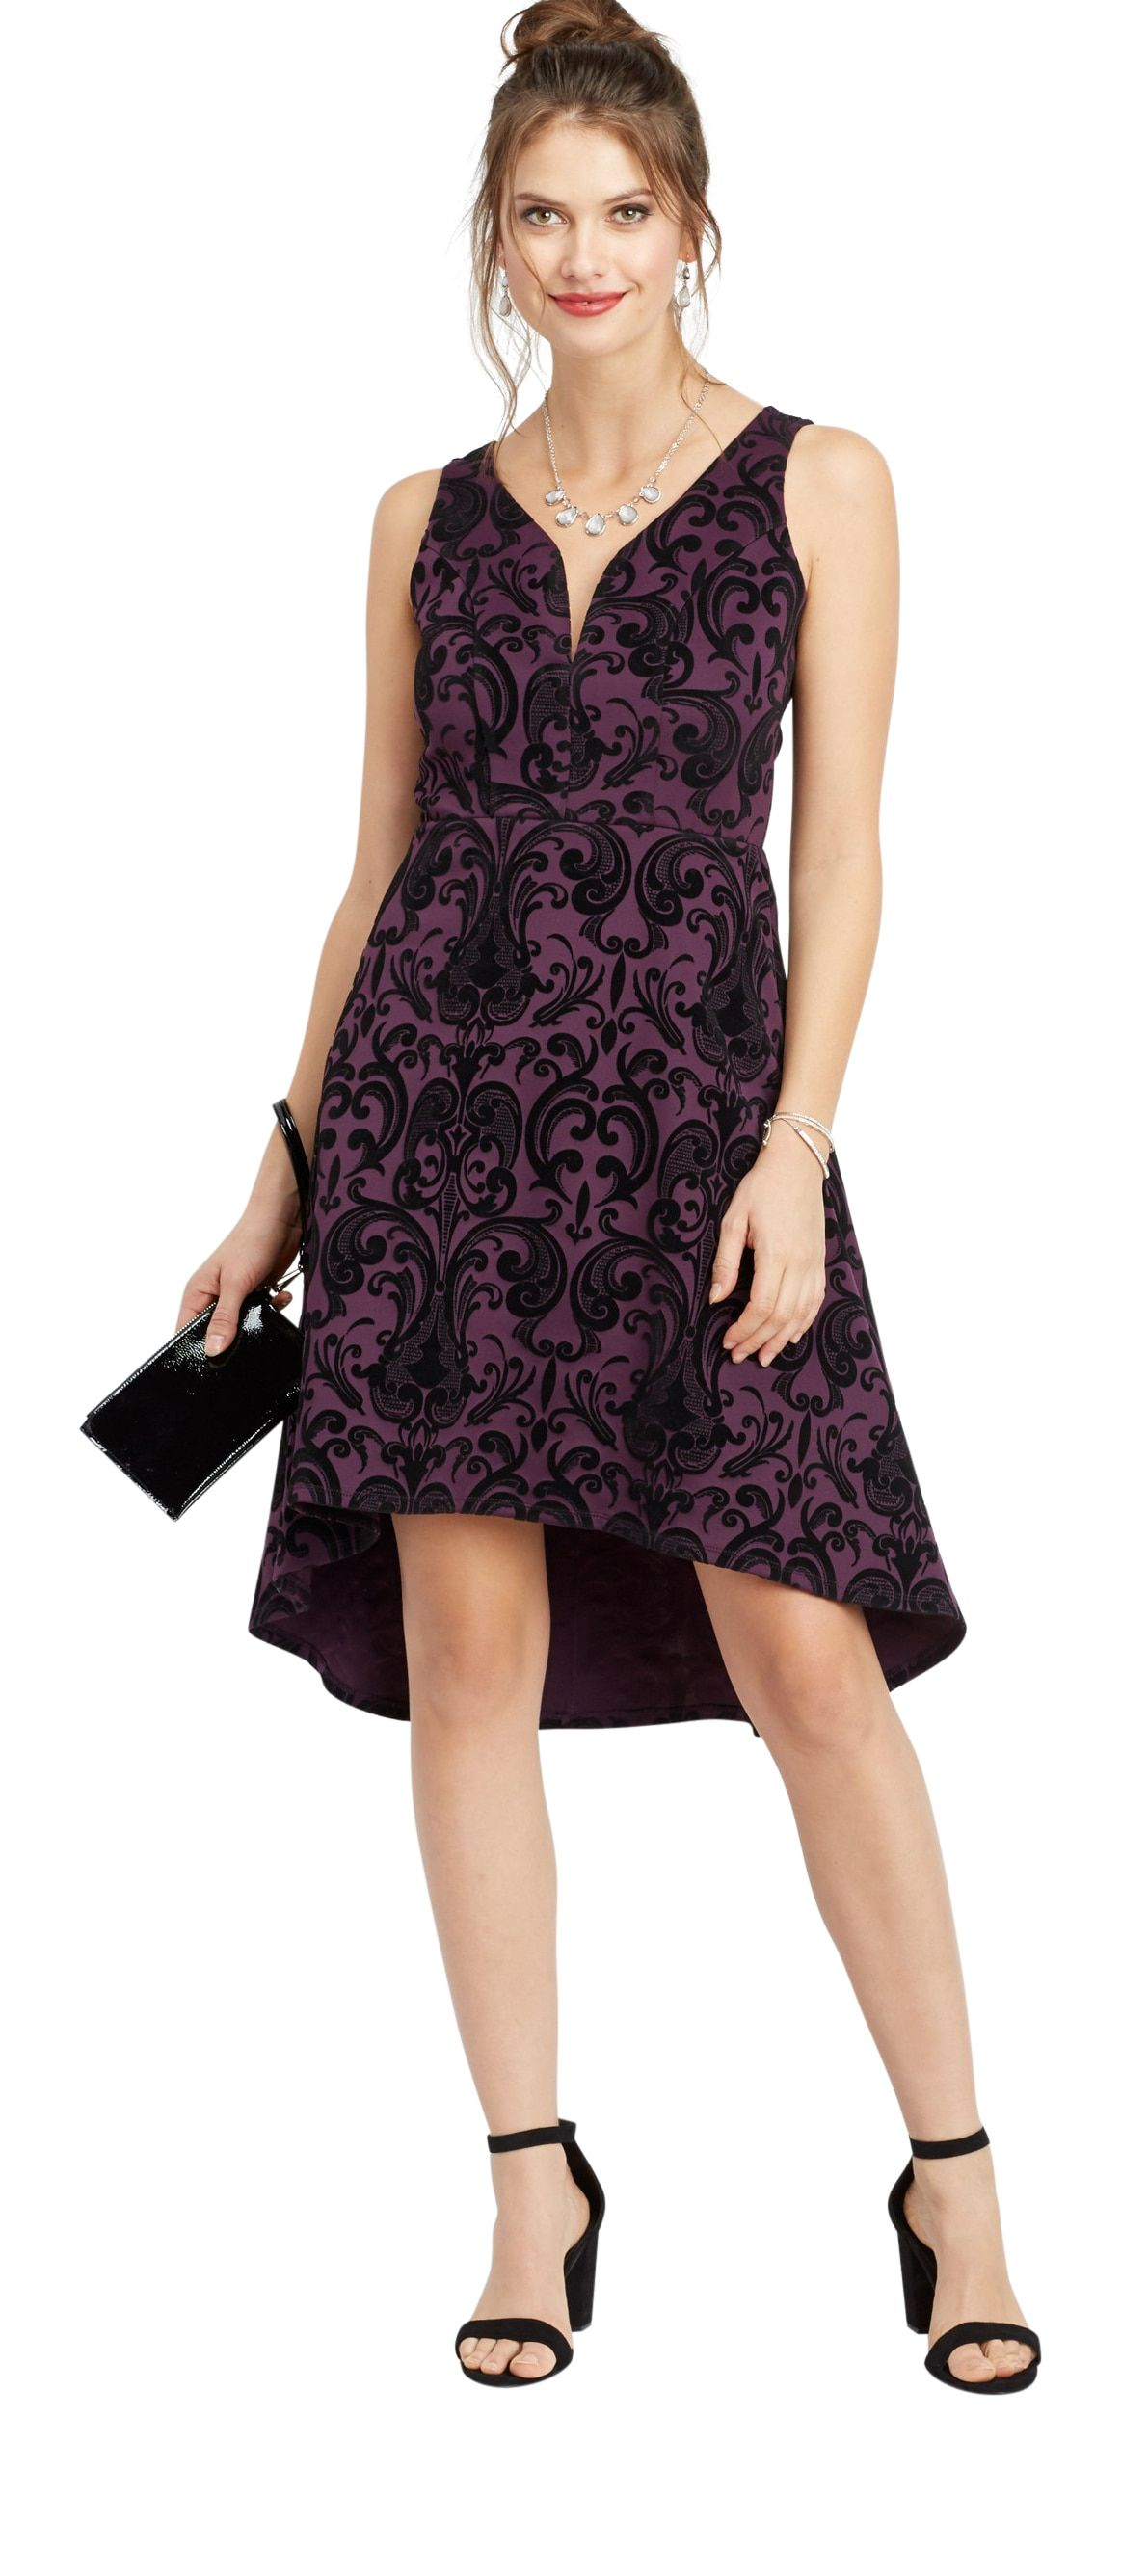 Maurices Floral Flecked High Low Dress Walmart Com Dresses High Low Dress Trendy Dresses [ 2673 x 1163 Pixel ]